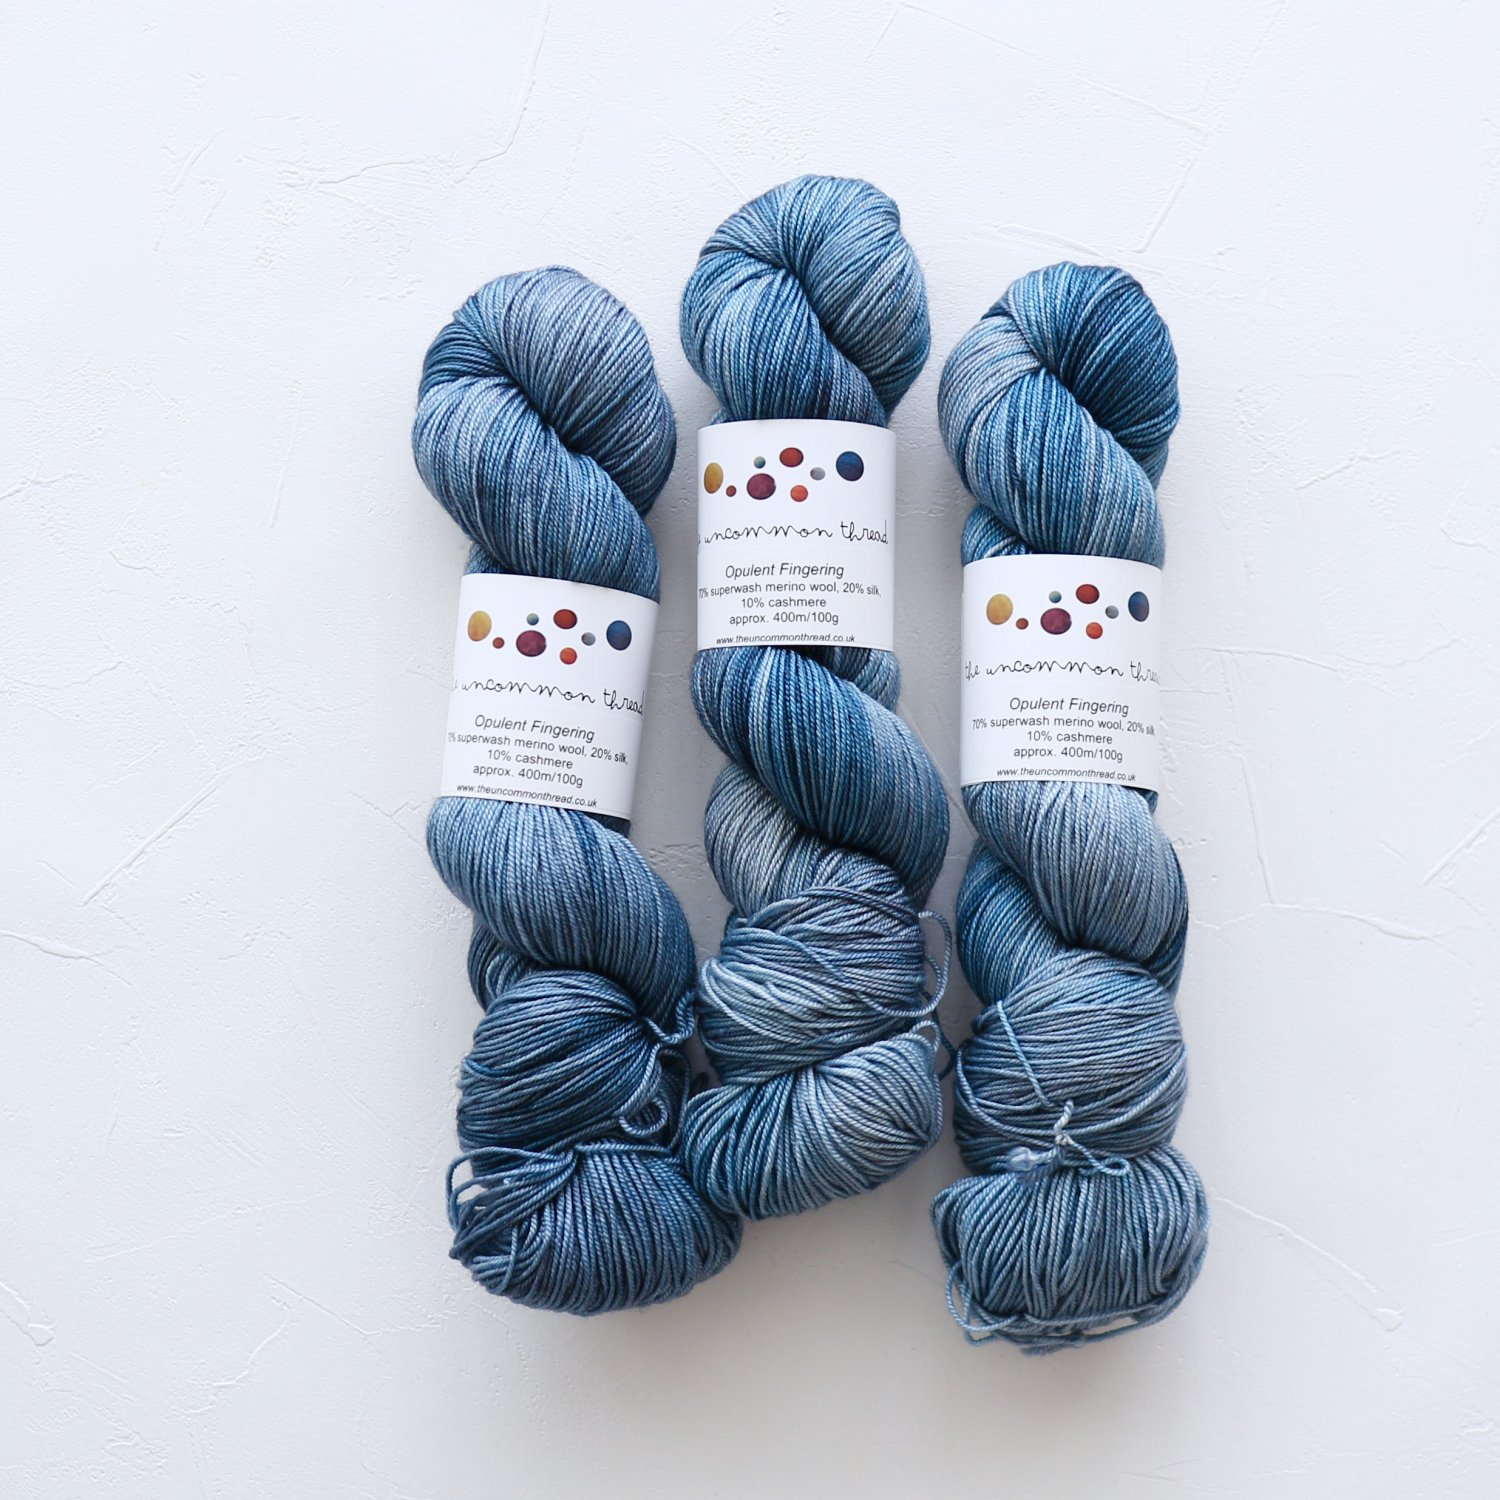 【The Uncommon Thread】<br>Opulent Fingering<br>Bassenthwaite